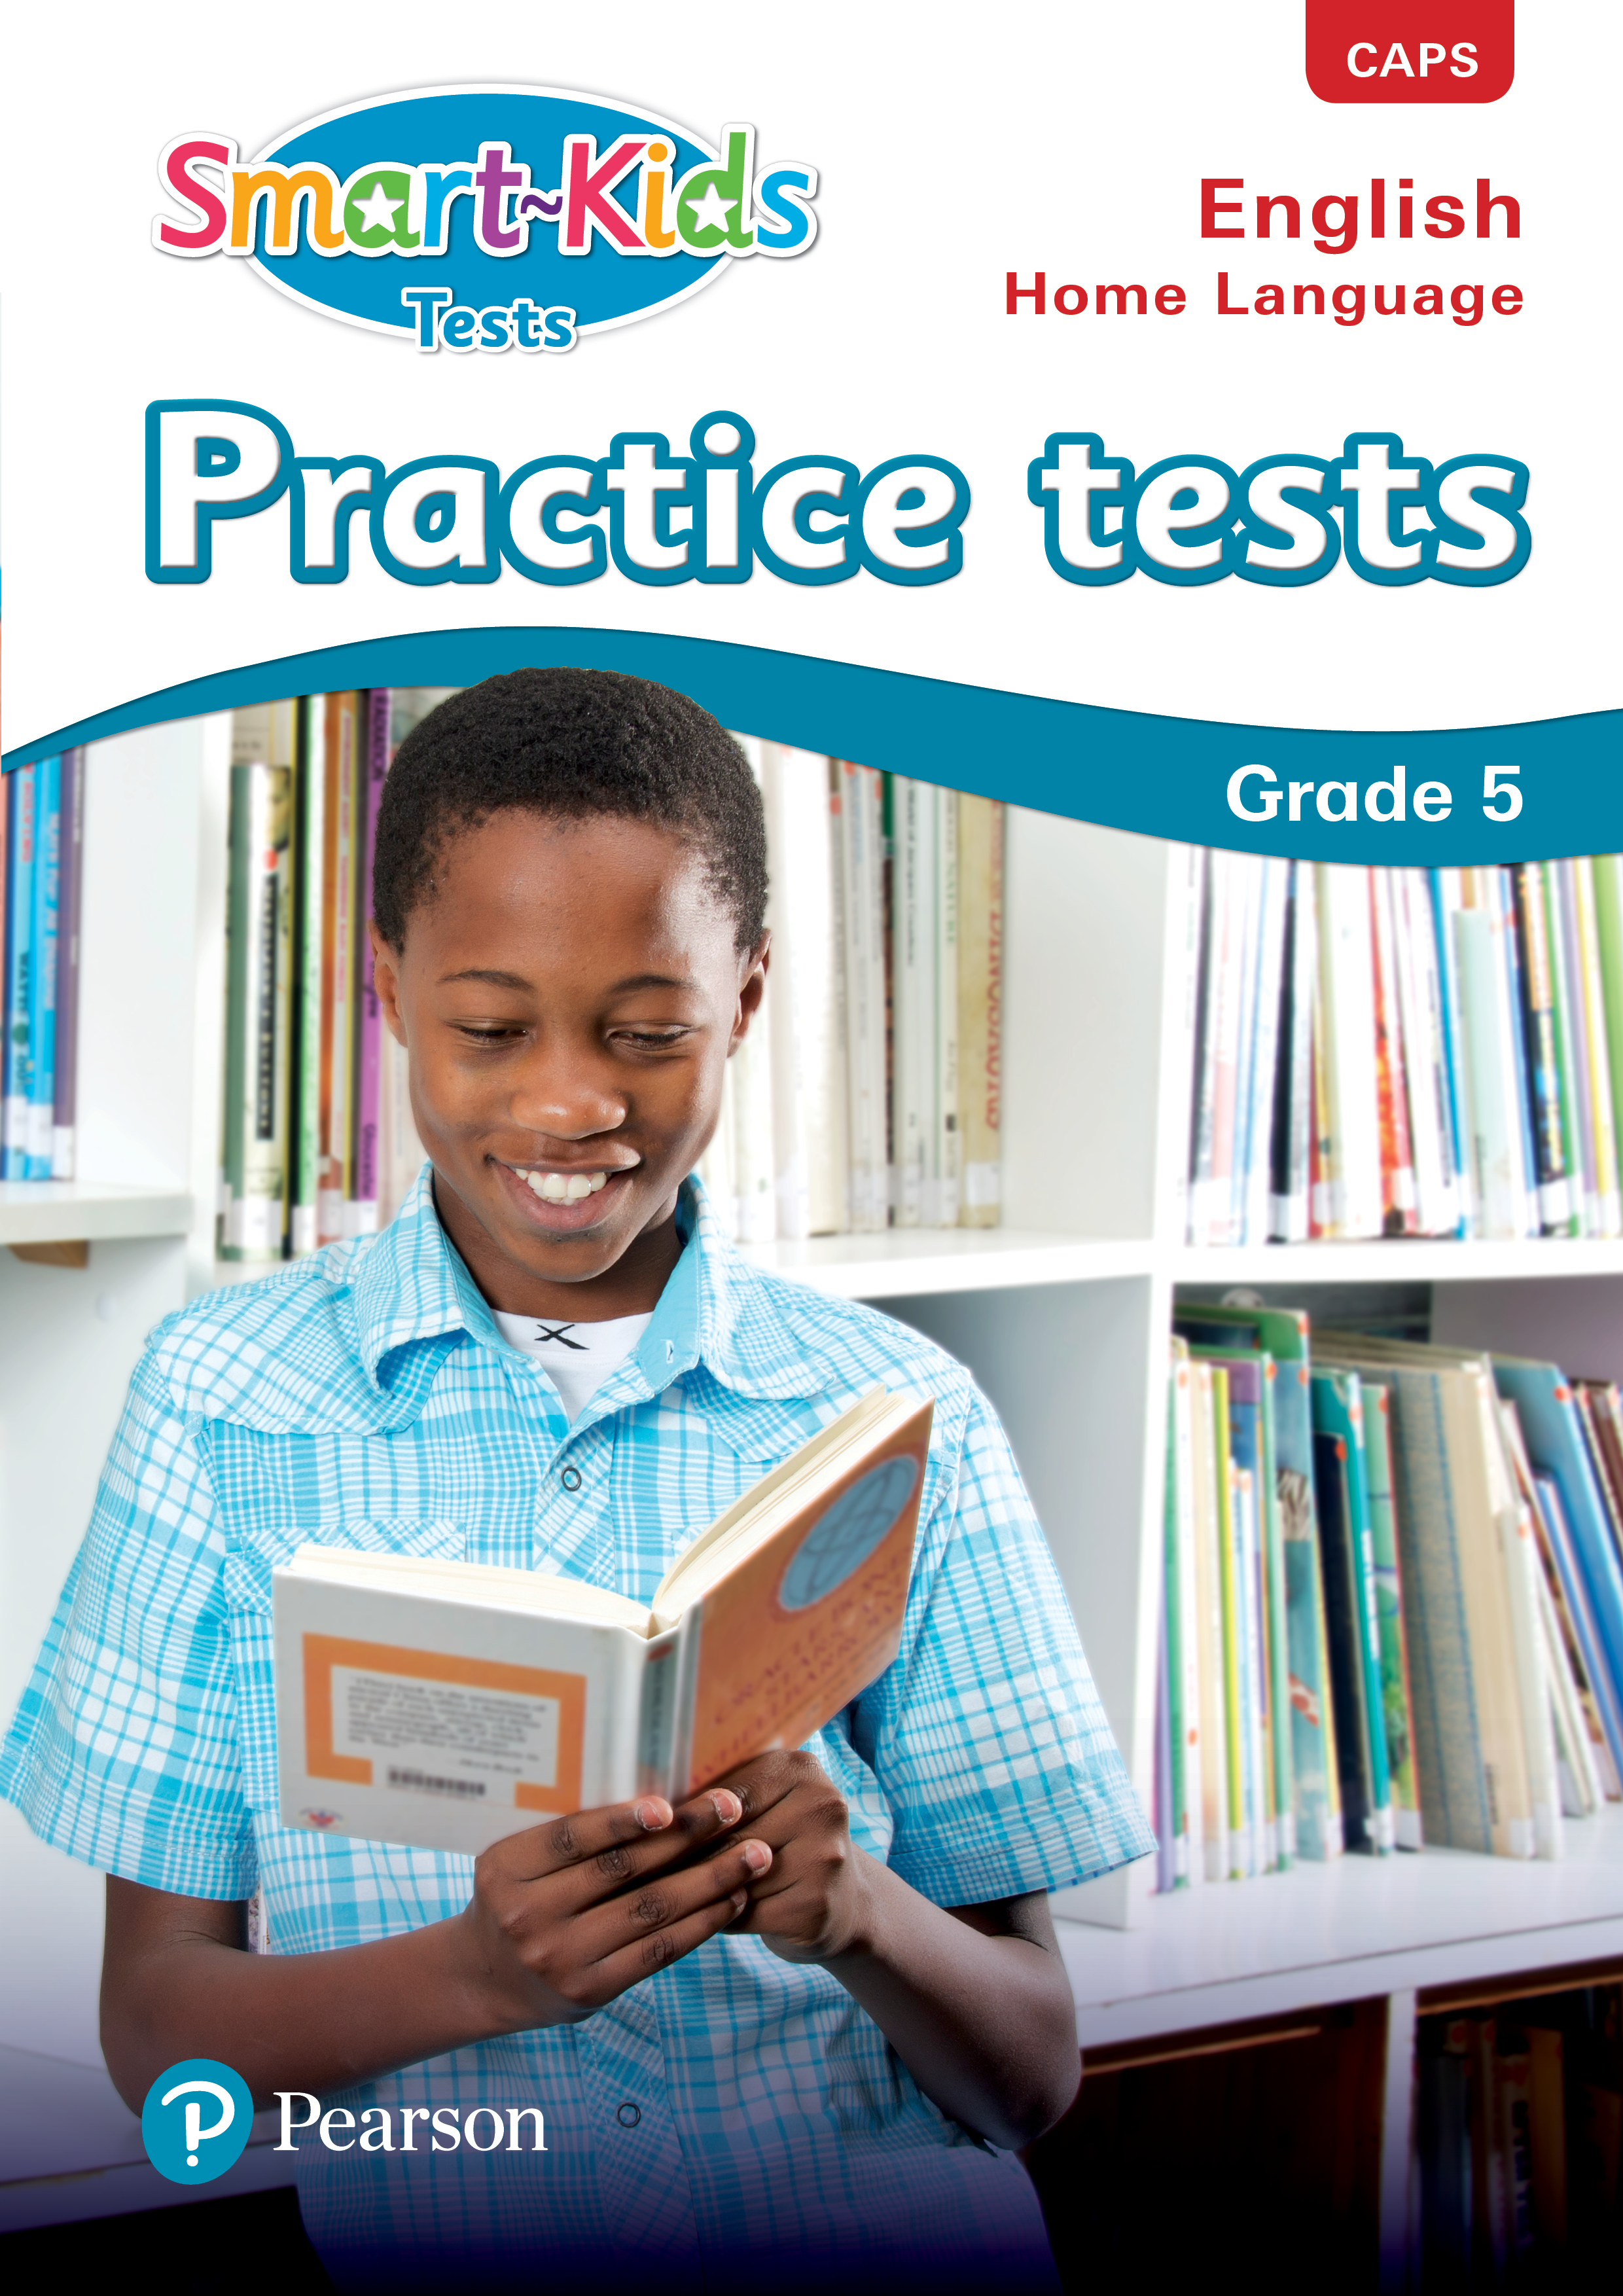 Picture of Smart-Kids Practice Tests English Home Language: Grade 5